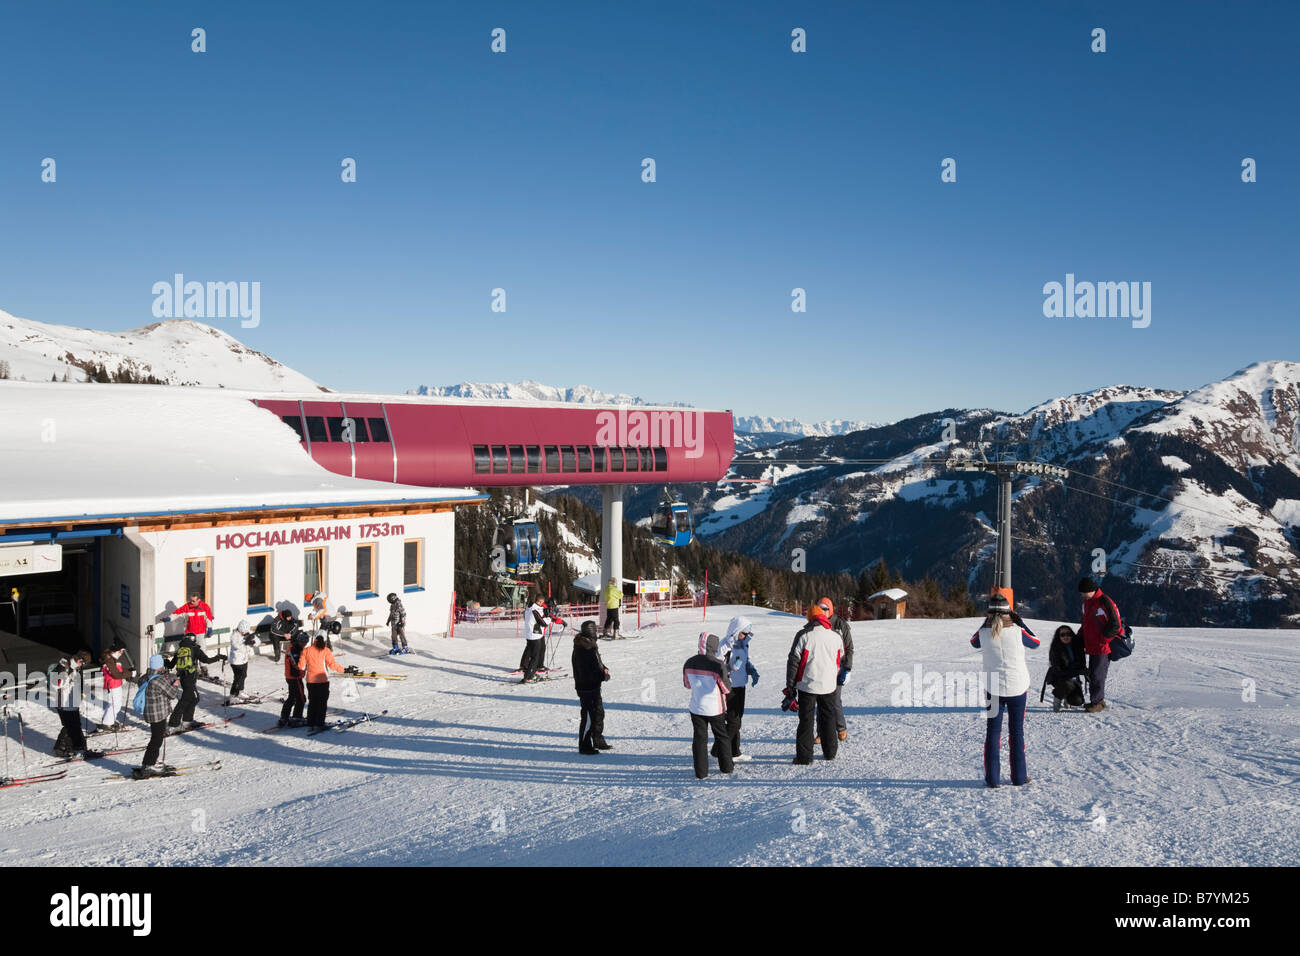 Skiers and walkers on piste snow slope by Hochalmbahn gondola station in Nationalpark Hohe Tauern in Austrian Alps. - Stock Image